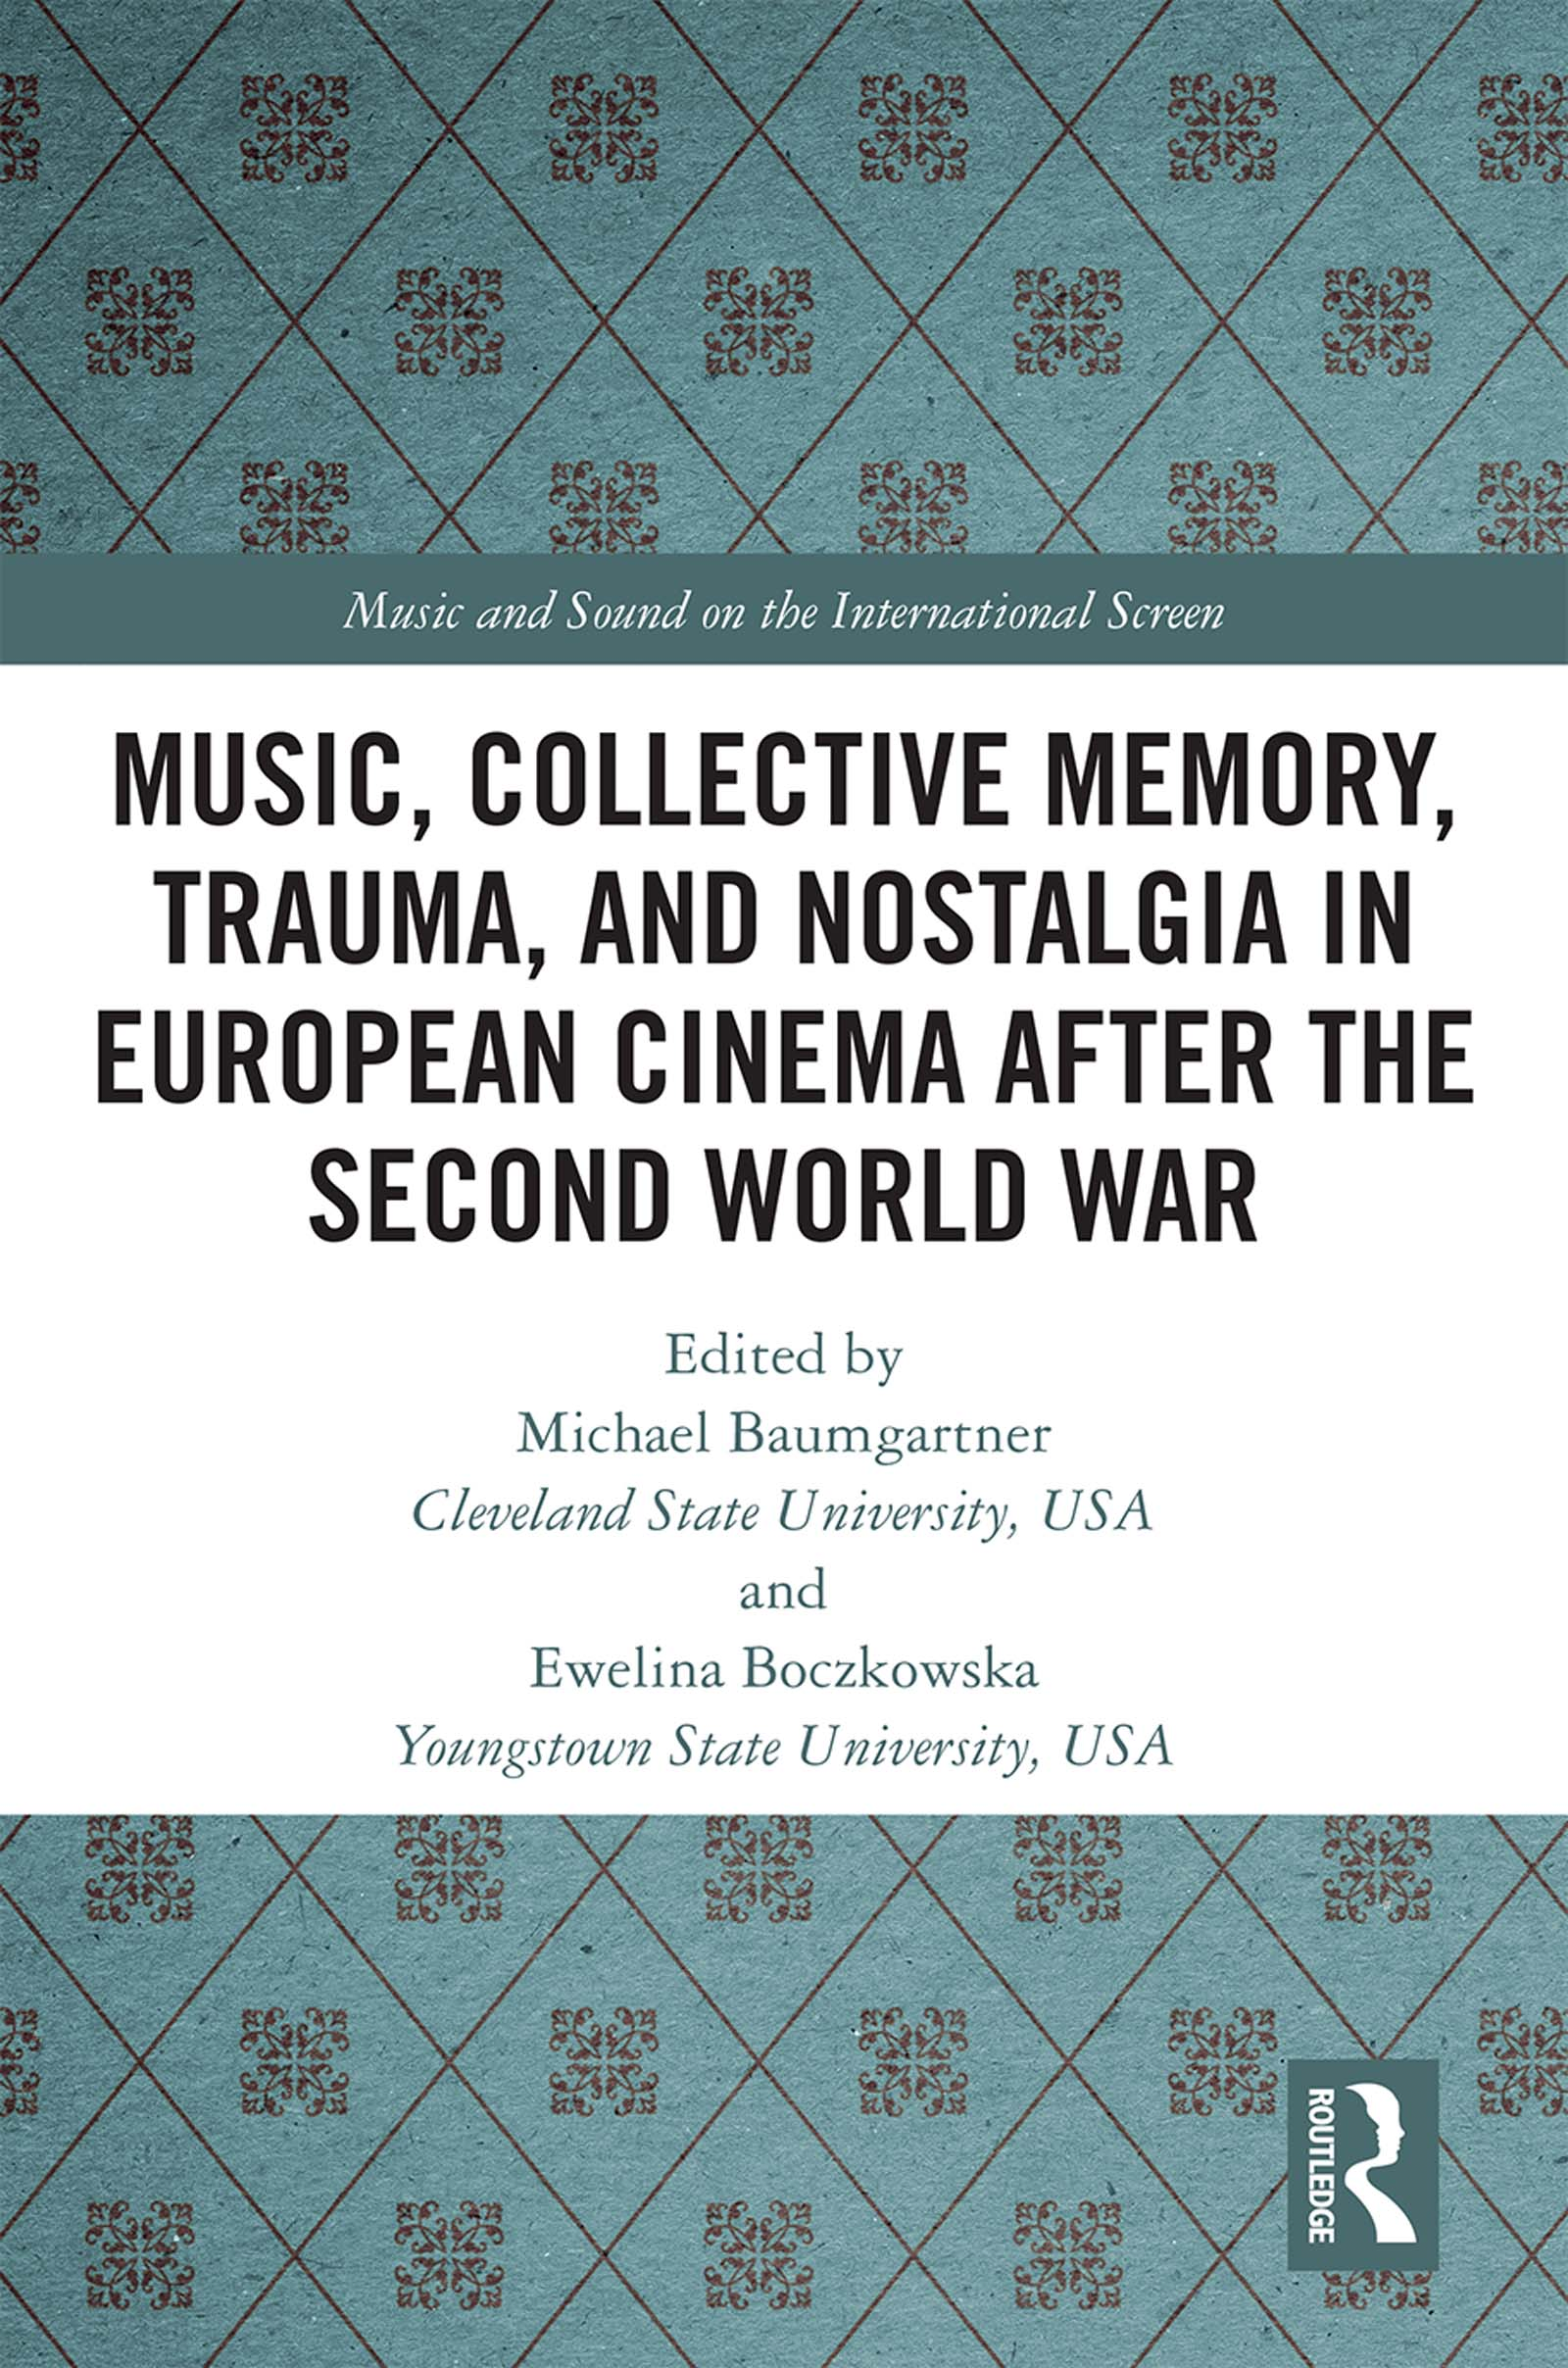 Music, Collective Memory, Trauma, and Nostalgia in European Cinema after the Second World War book cover